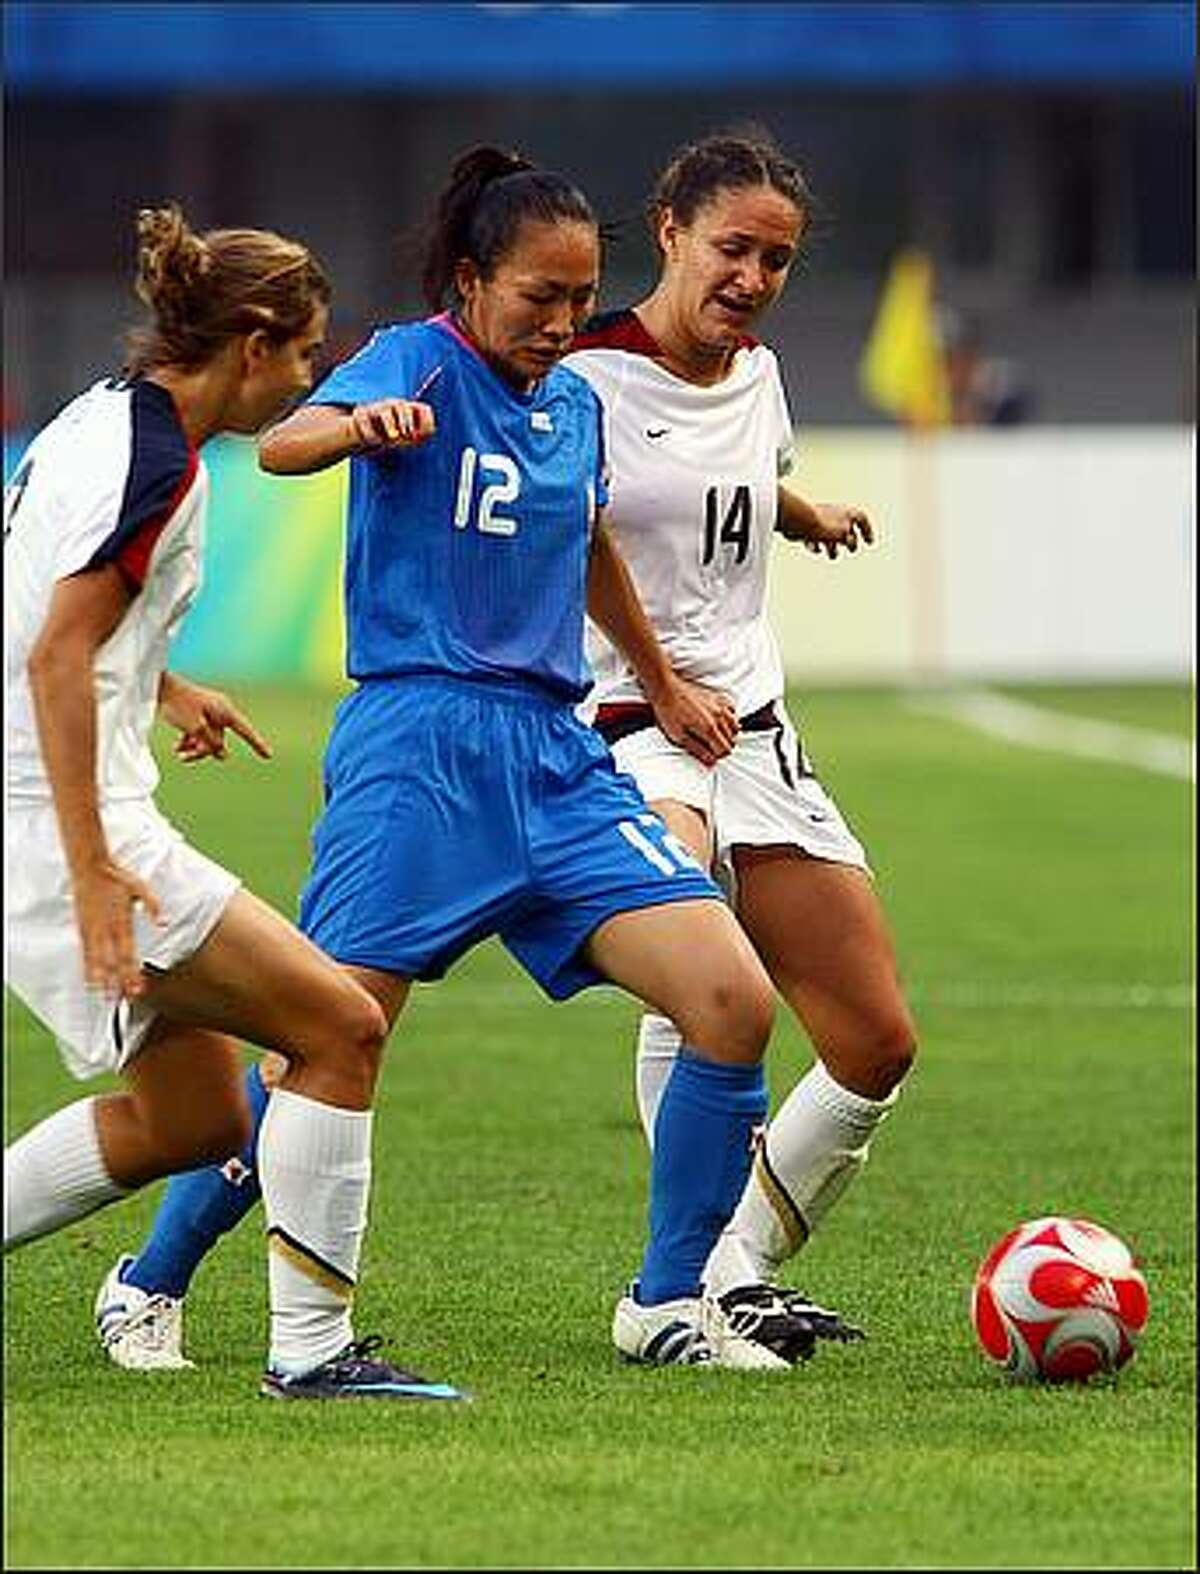 Karina Maruyama (C) of Japan vies with Stephanie Cox (R) of the US during their first round Group G women's football match of the 2008 Beijing Olympic Games at the Qinghuangdao Olympic Stadium. The defending US team defeated Japan by 1-0.